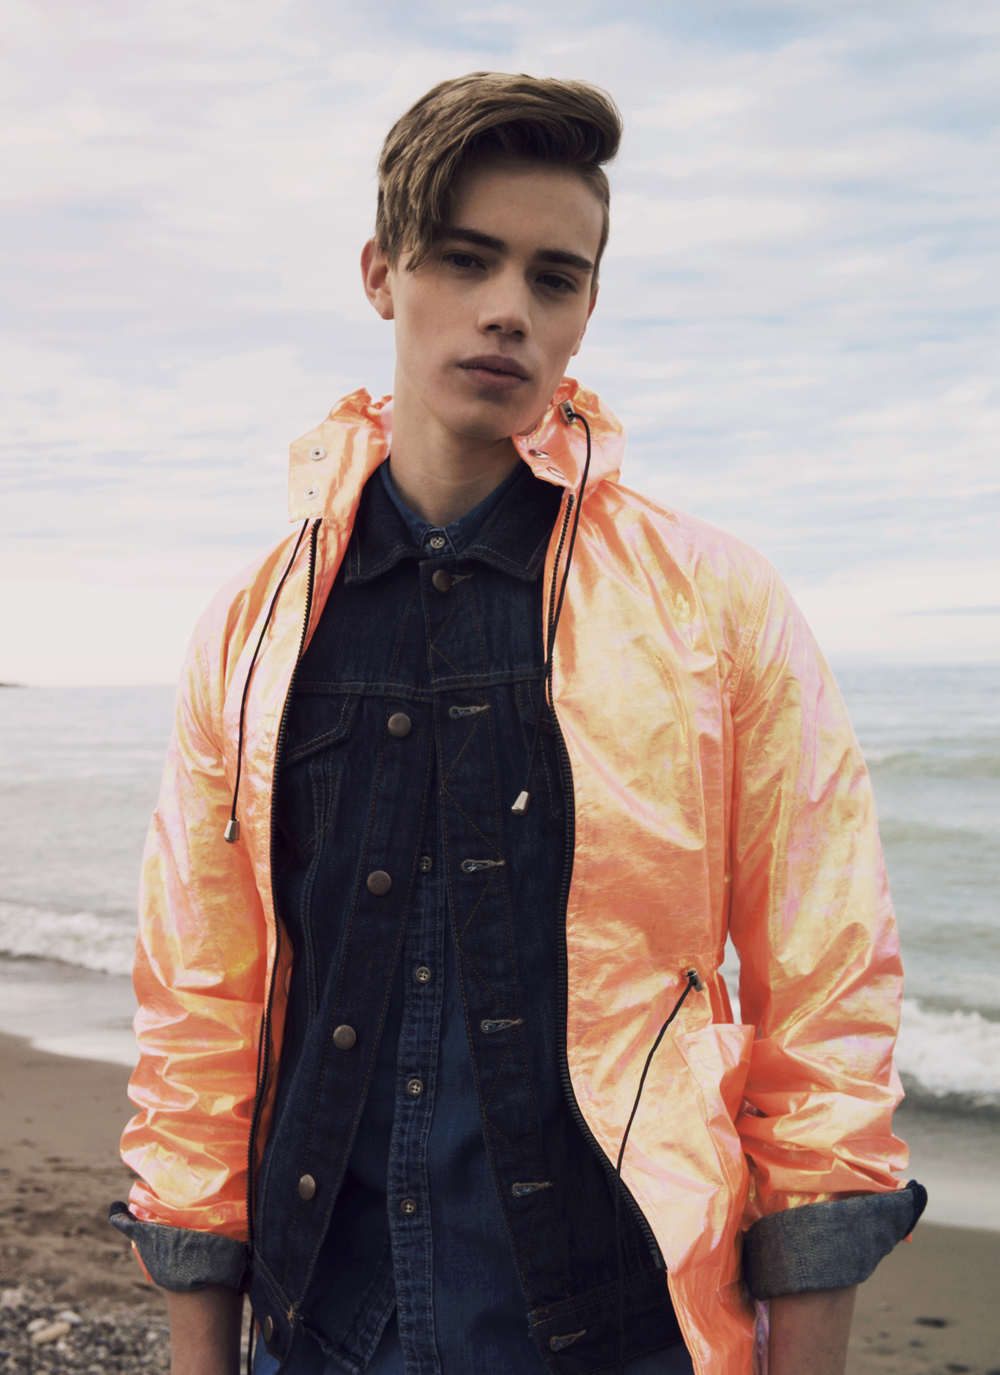 Jacket and trousers ANDREW COIMBRA, denim jacket RAG & BONE, denim shirt DIESEL